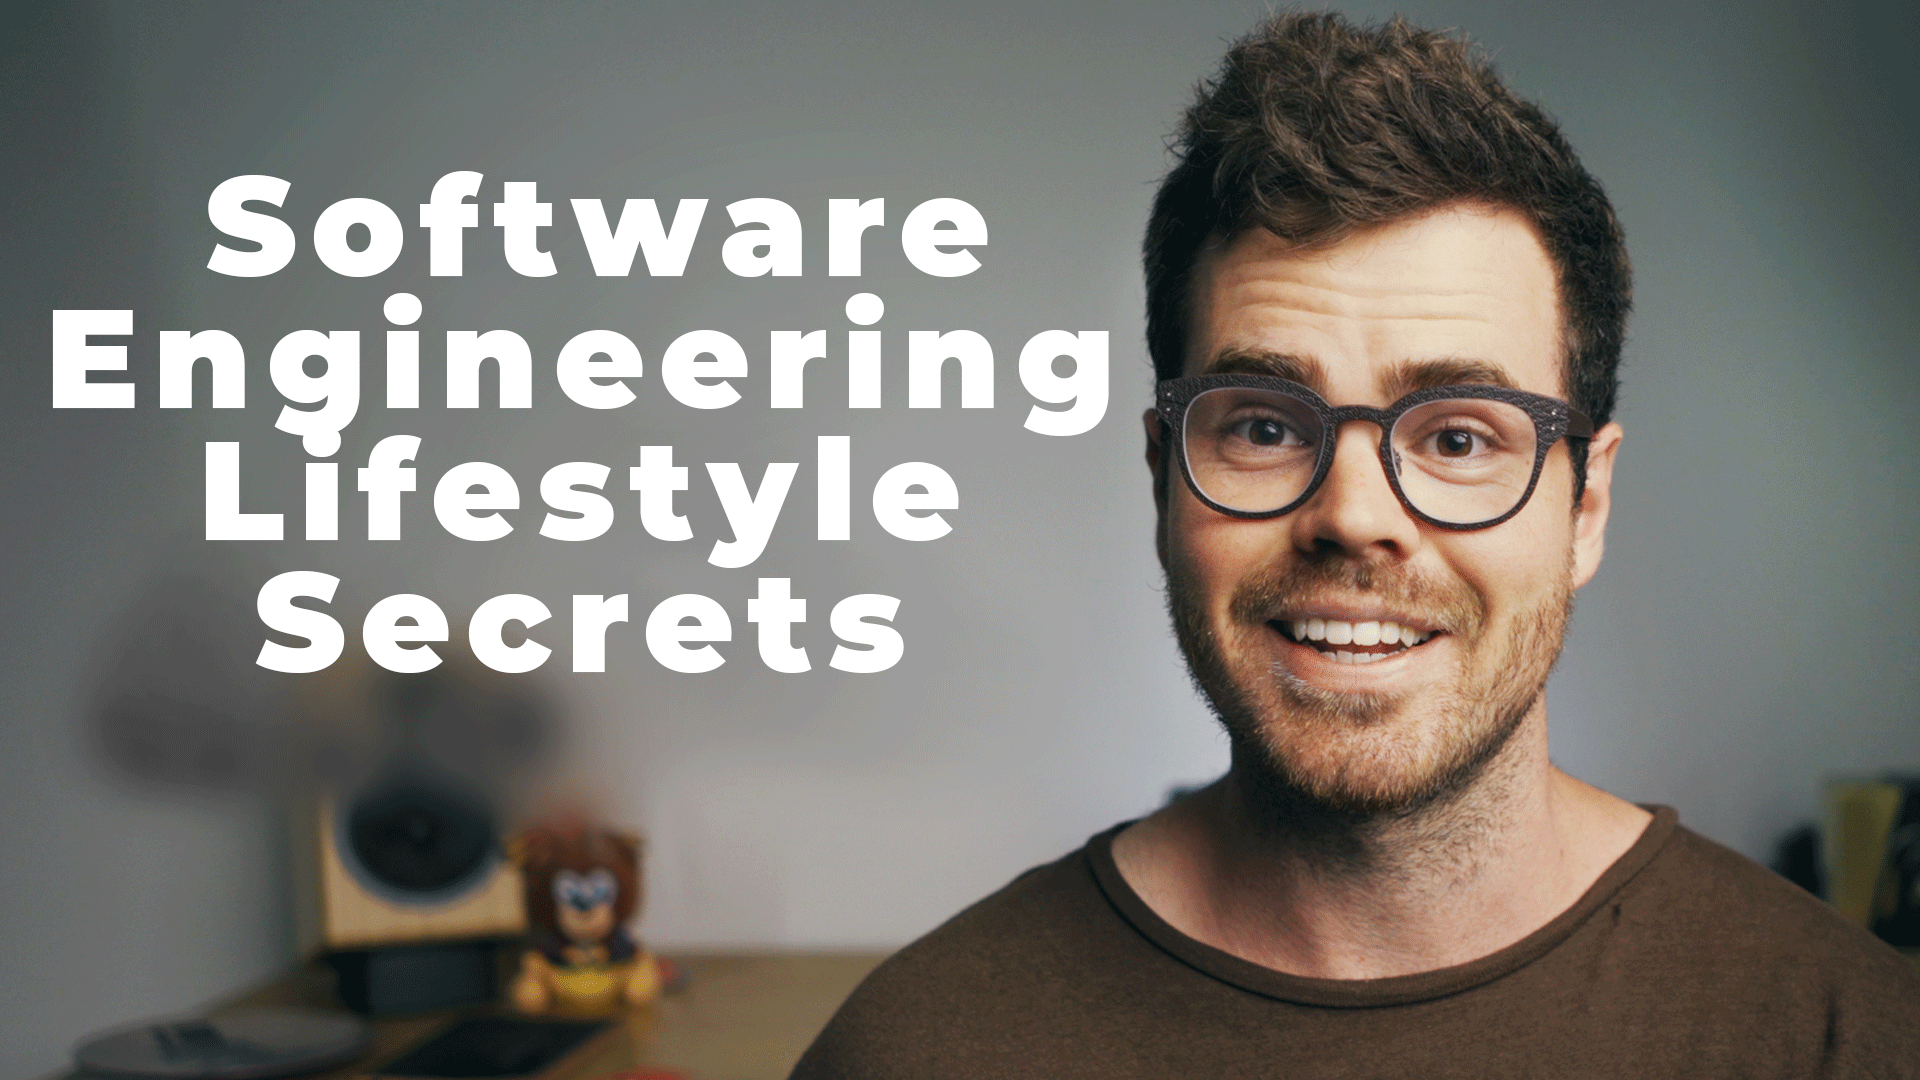 5 Key Benefits Of Being a Software Engineer Nobody Tells You